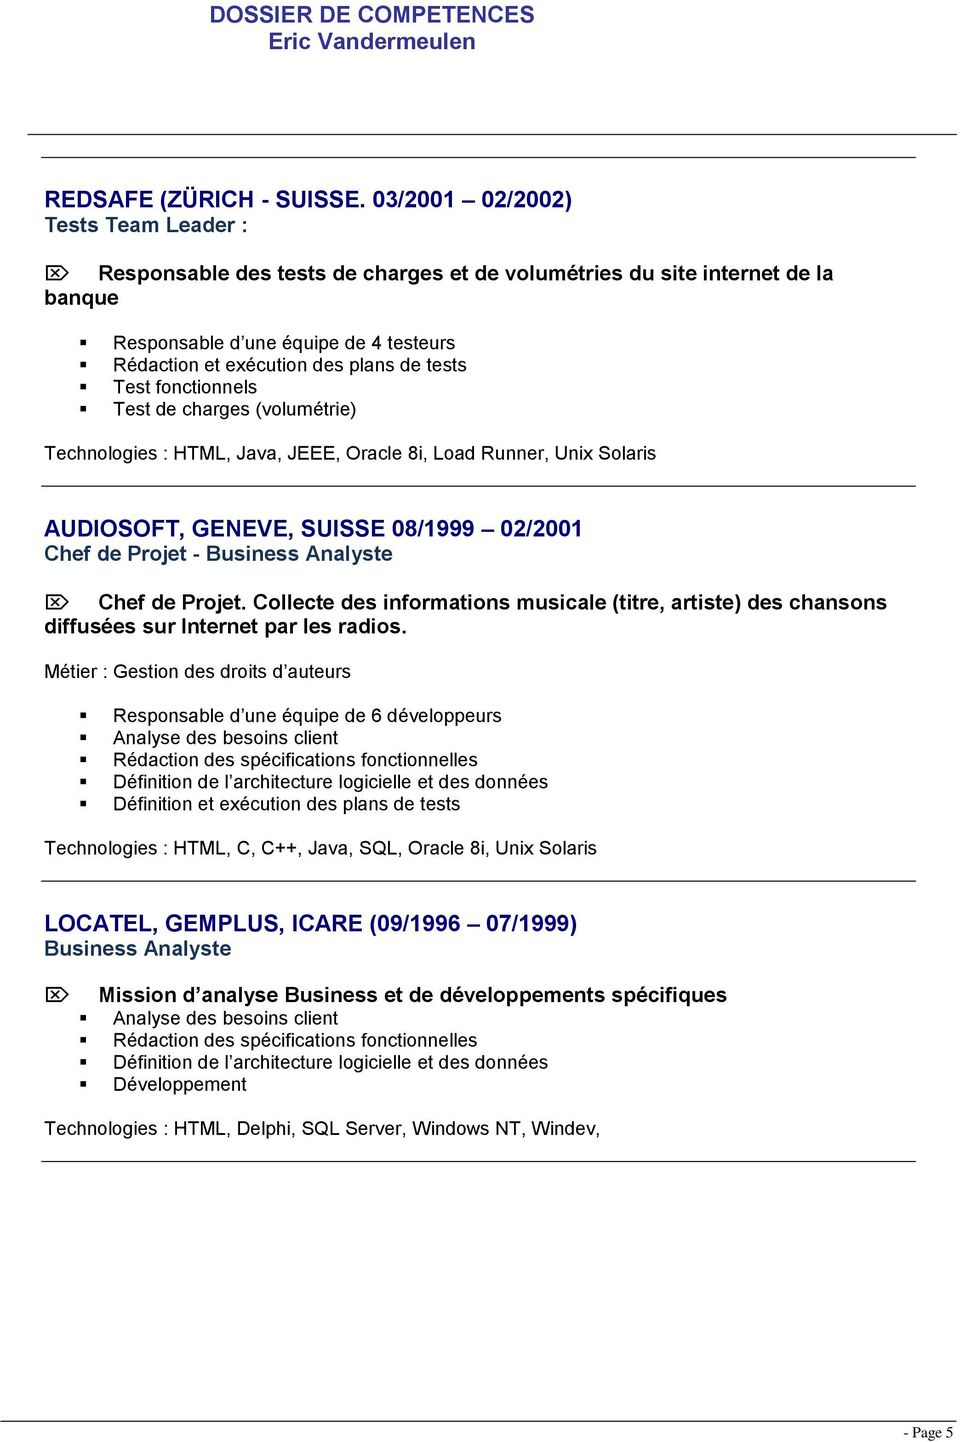 Test fonctionnels Test de charges (volumétrie) Technologies : HTML, Java, JEEE, Oracle 8i, Load Runner, Unix Solaris AUDIOSOFT, GENEVE, SUISSE 08/1999 02/2001 Chef de Projet - Business Analyste Chef